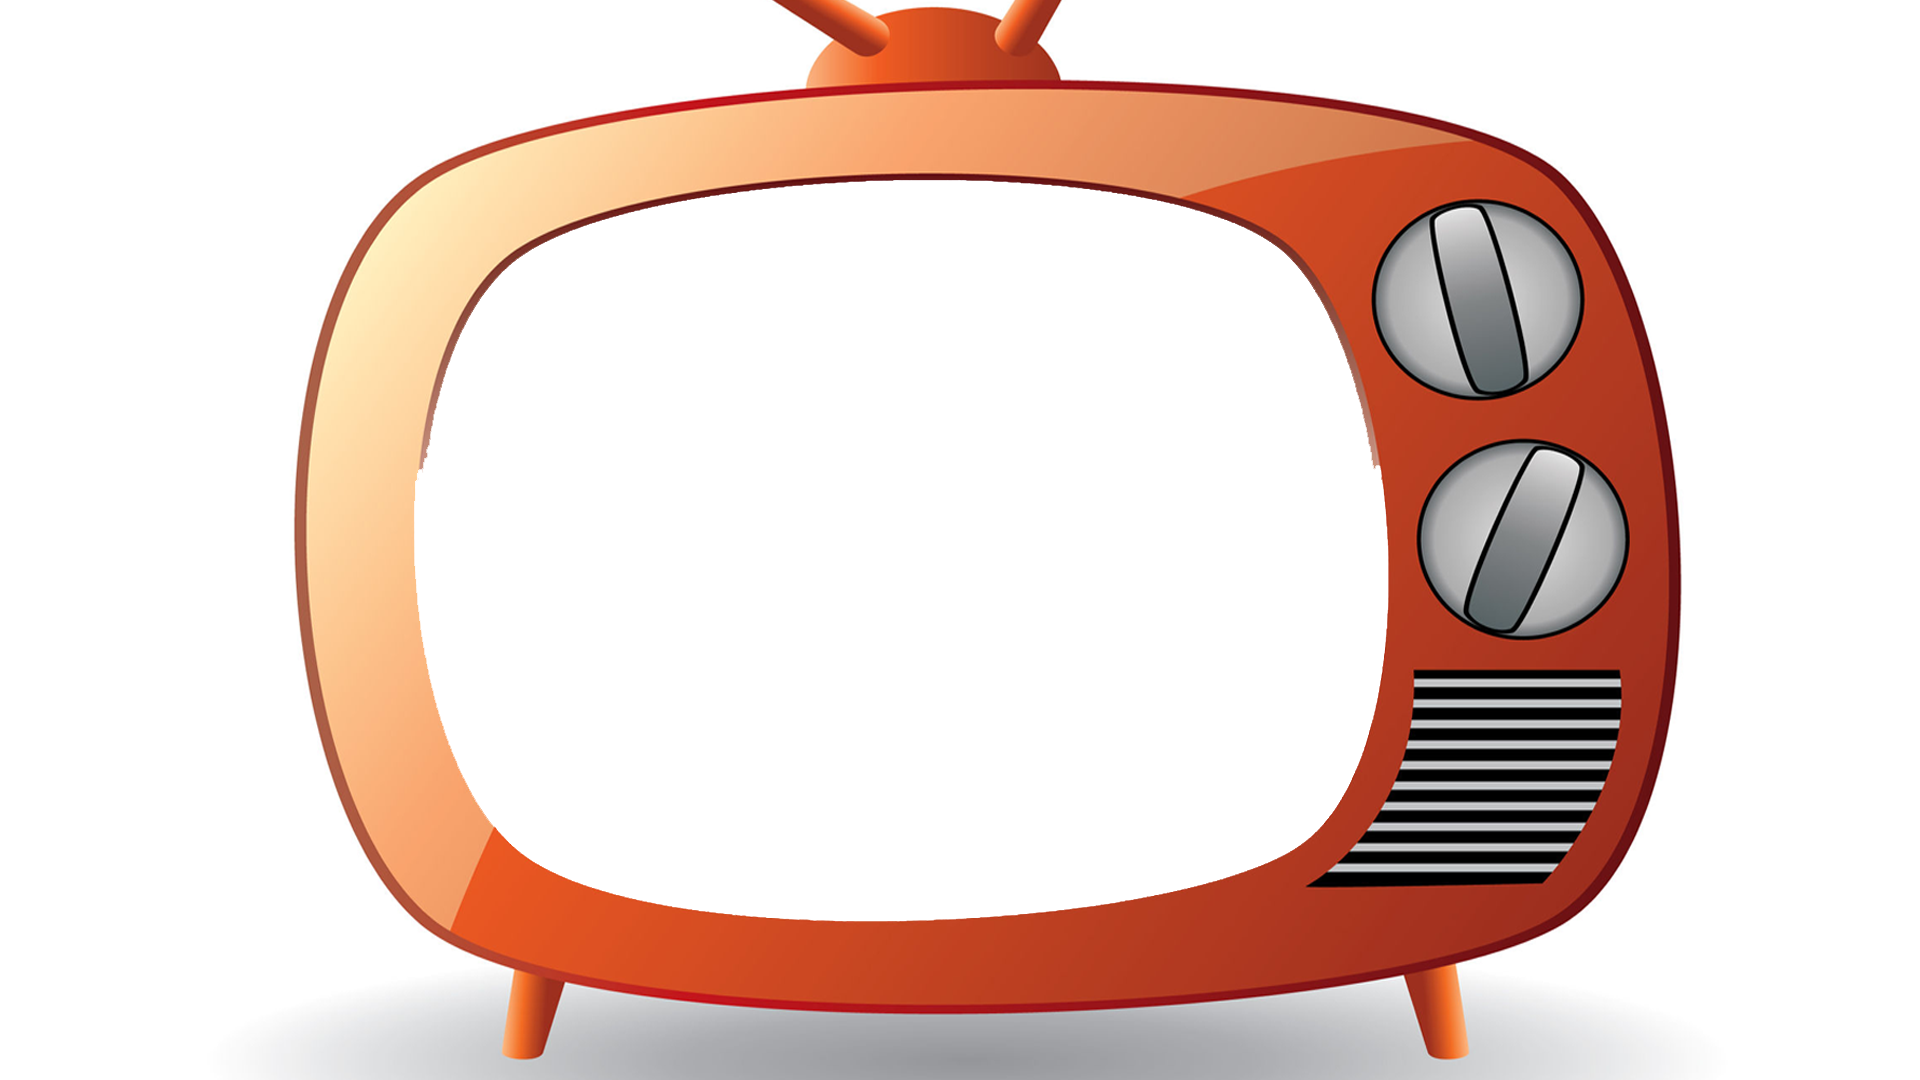 Tv cartoon png. Teacher resources the story